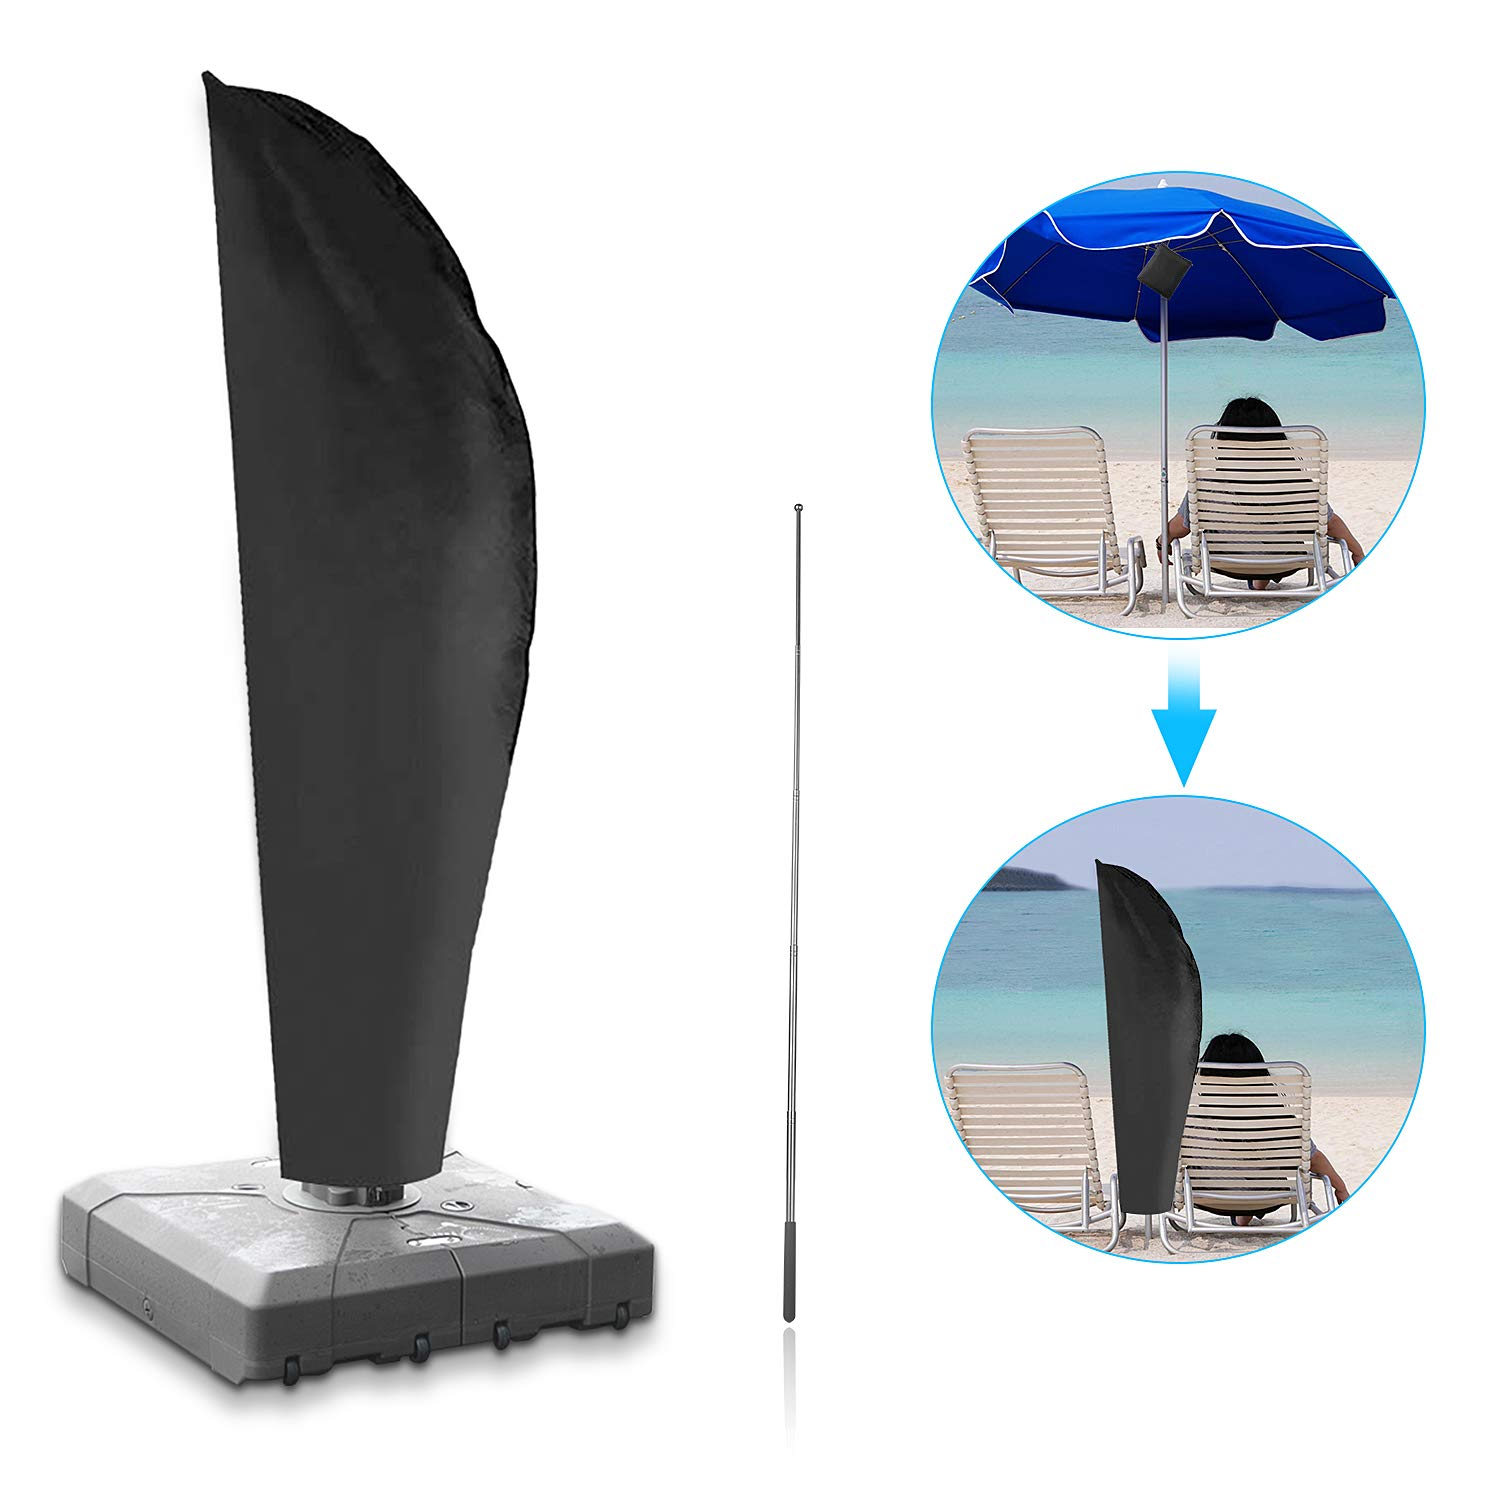 Mixhomic Parasol Cover Large Cantilever,Umbrella Cover Waterproof UV-Resistant 210D,Sun Umbrella Cover,Umbrella Covers for Outdoor Umbrellas-Strong and Durable by Mixhomic